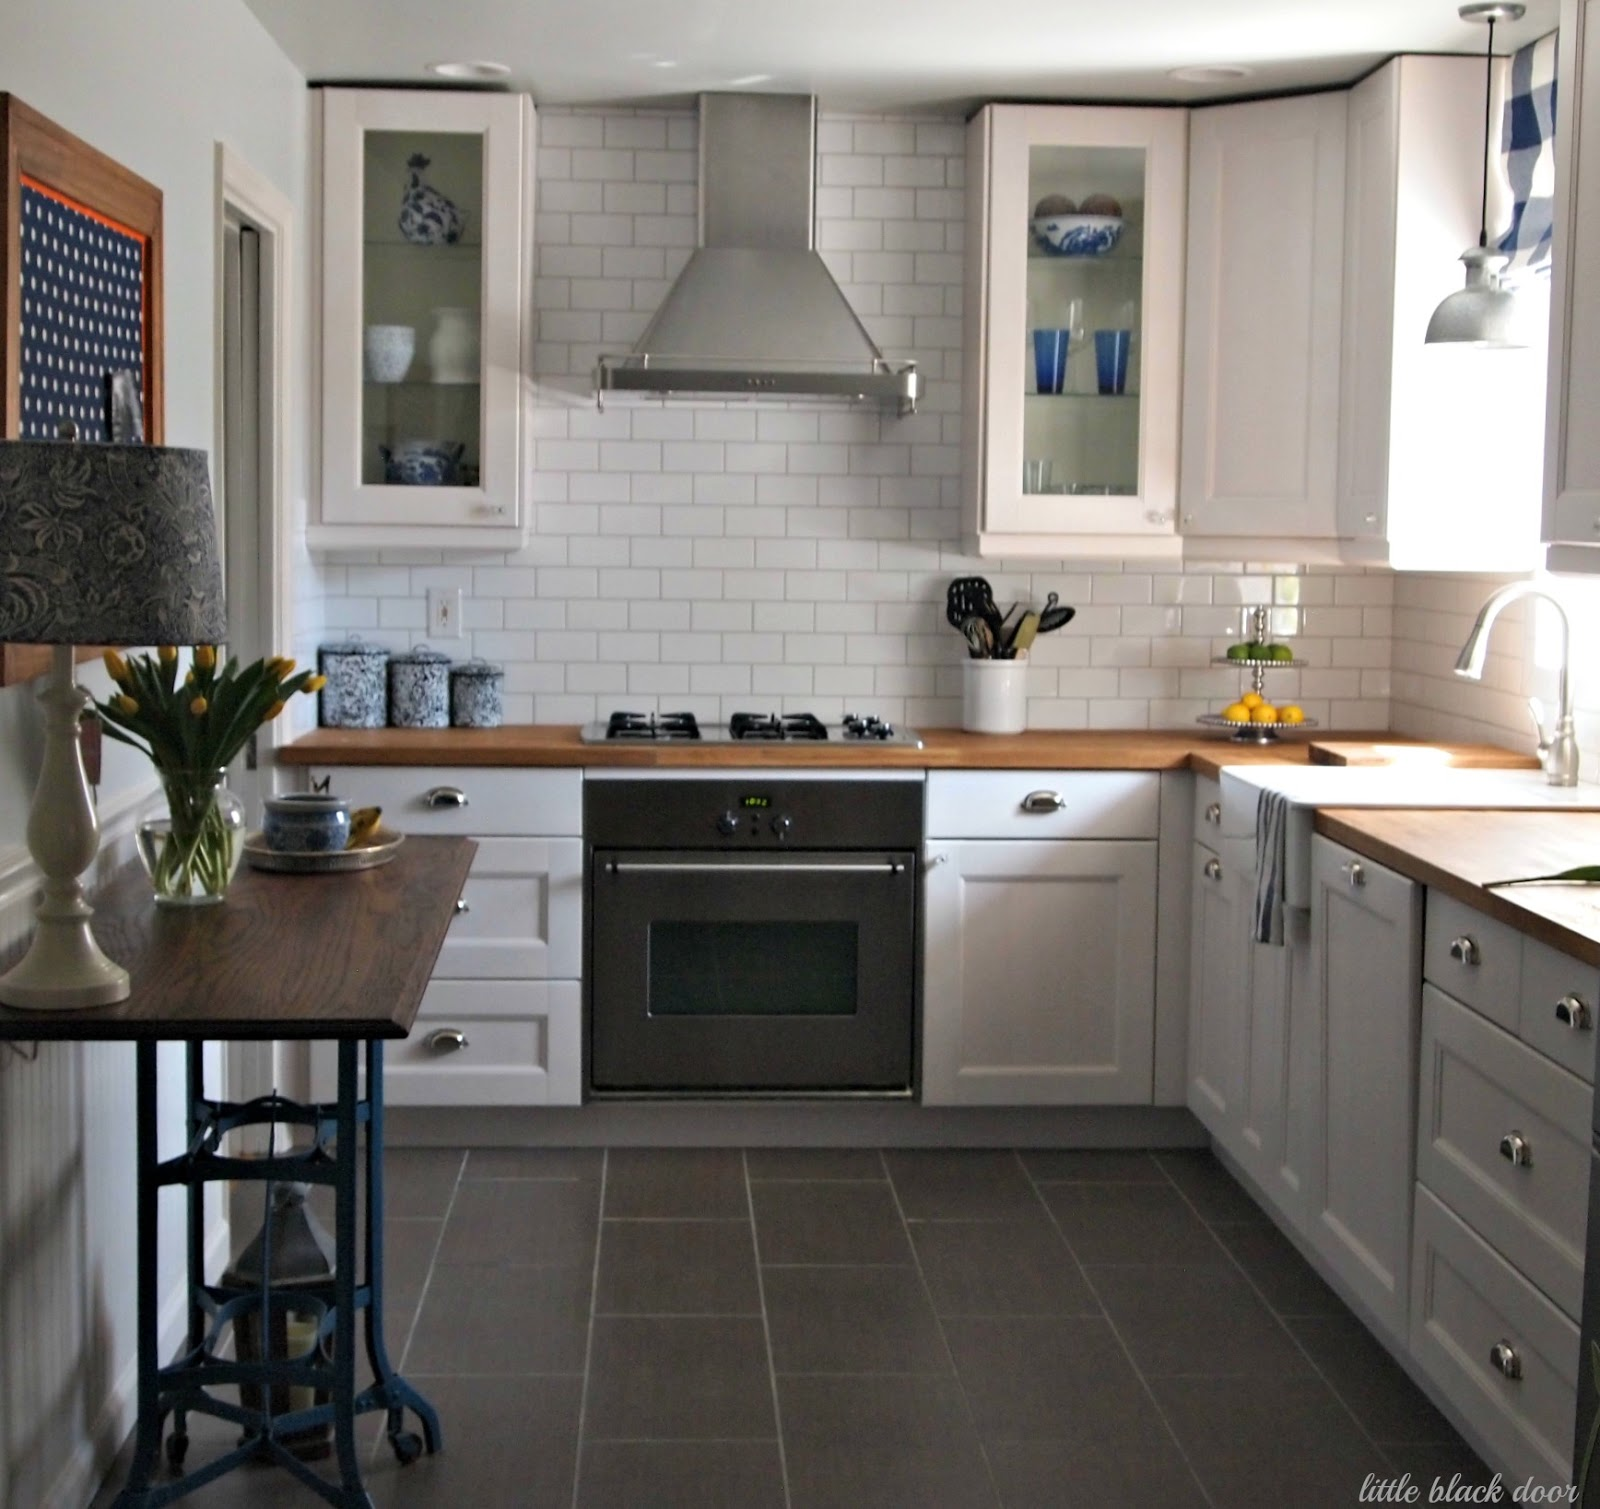 Farmhouse Kitchen With Dark Cabinets: Ikea Farmhouse Kitchen